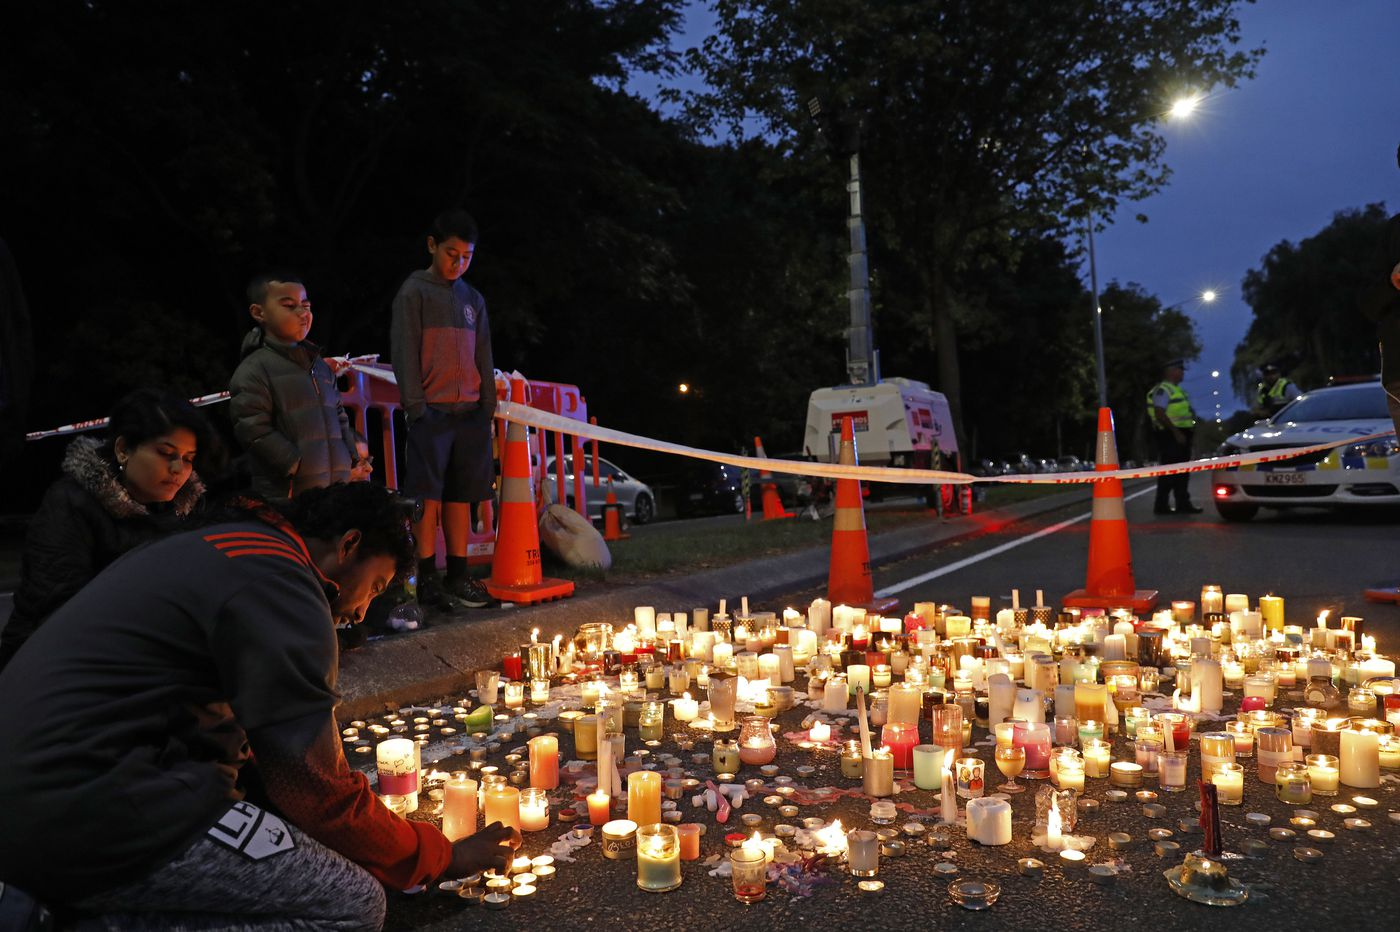 How can we stop anti-Muslim bias that blames an entire culture for individual acts? | Opinion